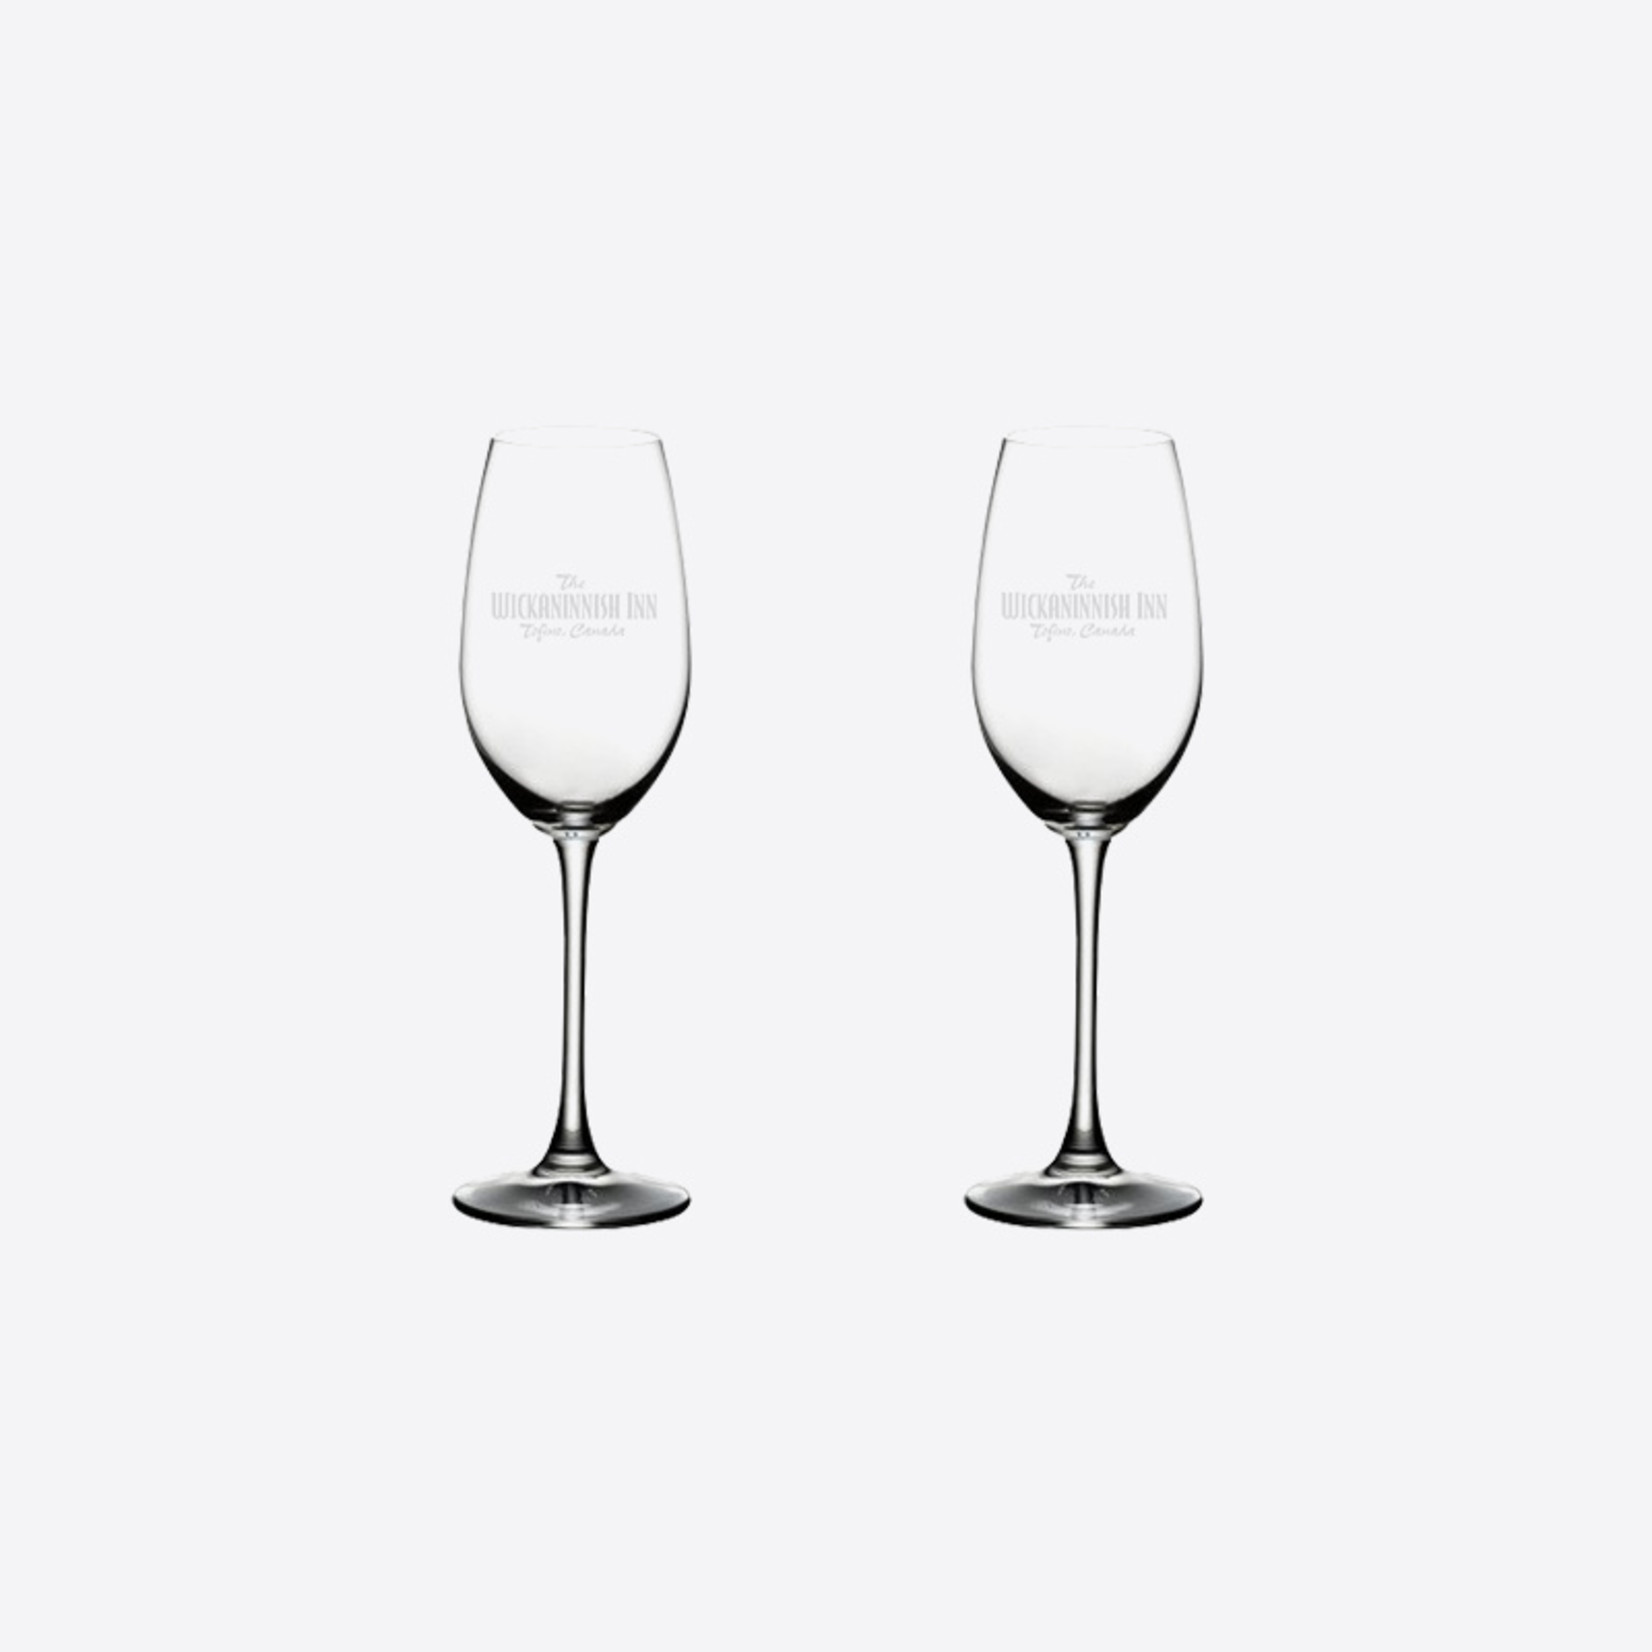 Riedel Riedel Champagne Flute Pair